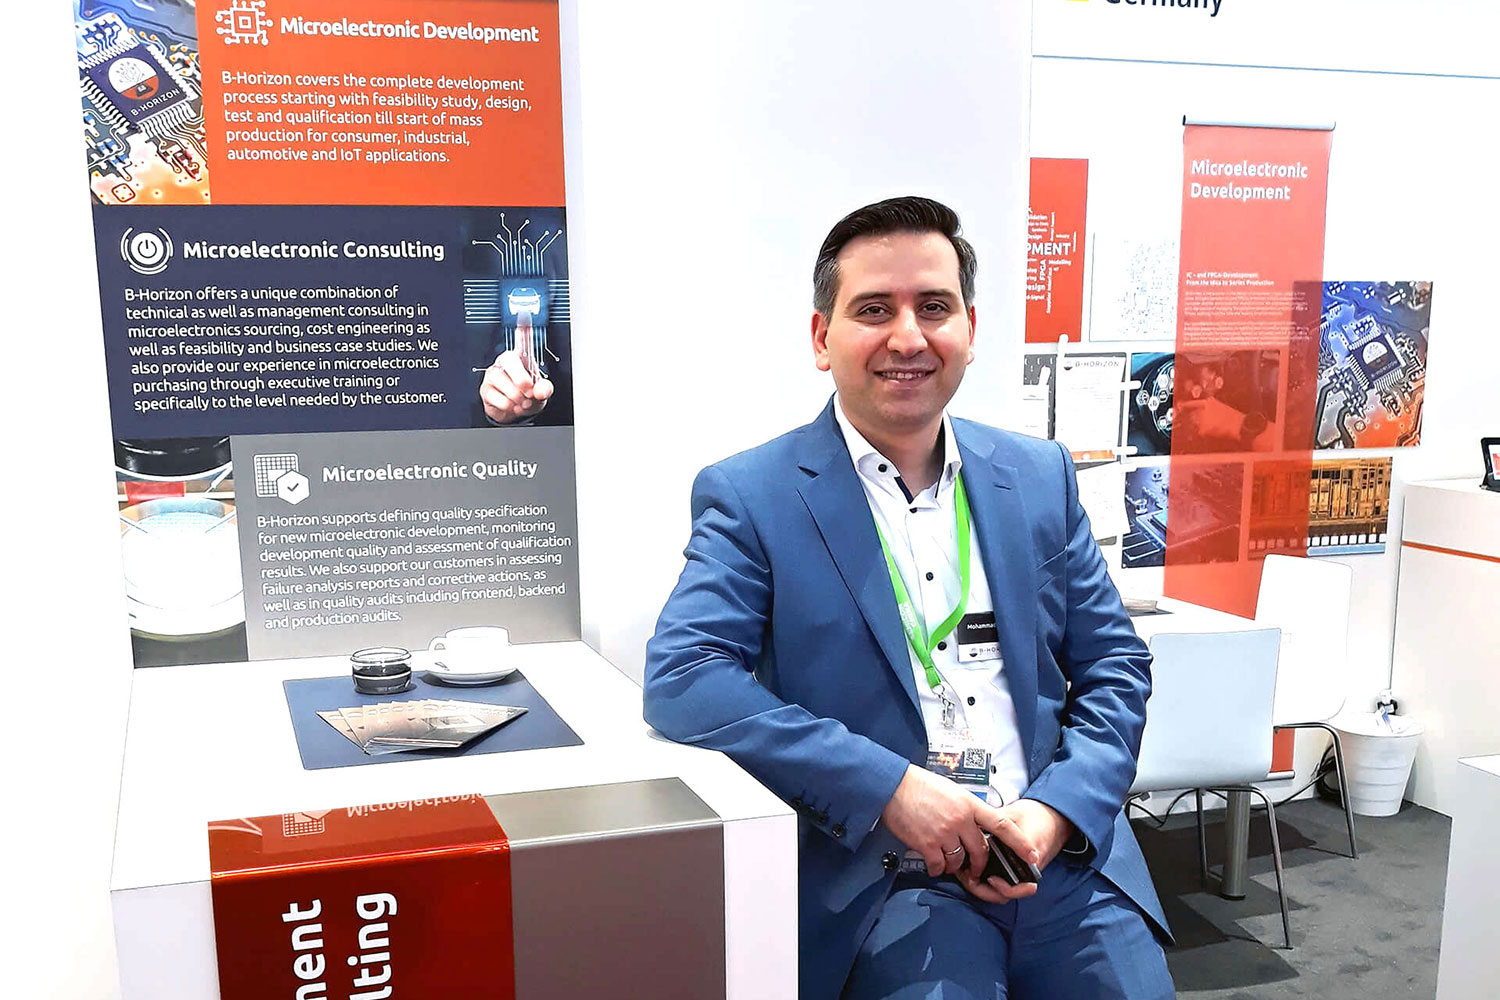 Founder and CEO Mohammad Kabany at B-Horizon's booth at the SEMICON China. The SEMICON China takes place in the global metropolis Shanghai every year. This fair is considered as the biggest trade fair in the fields of electrical engineering, semiconductor technology and energy industry worldwide.